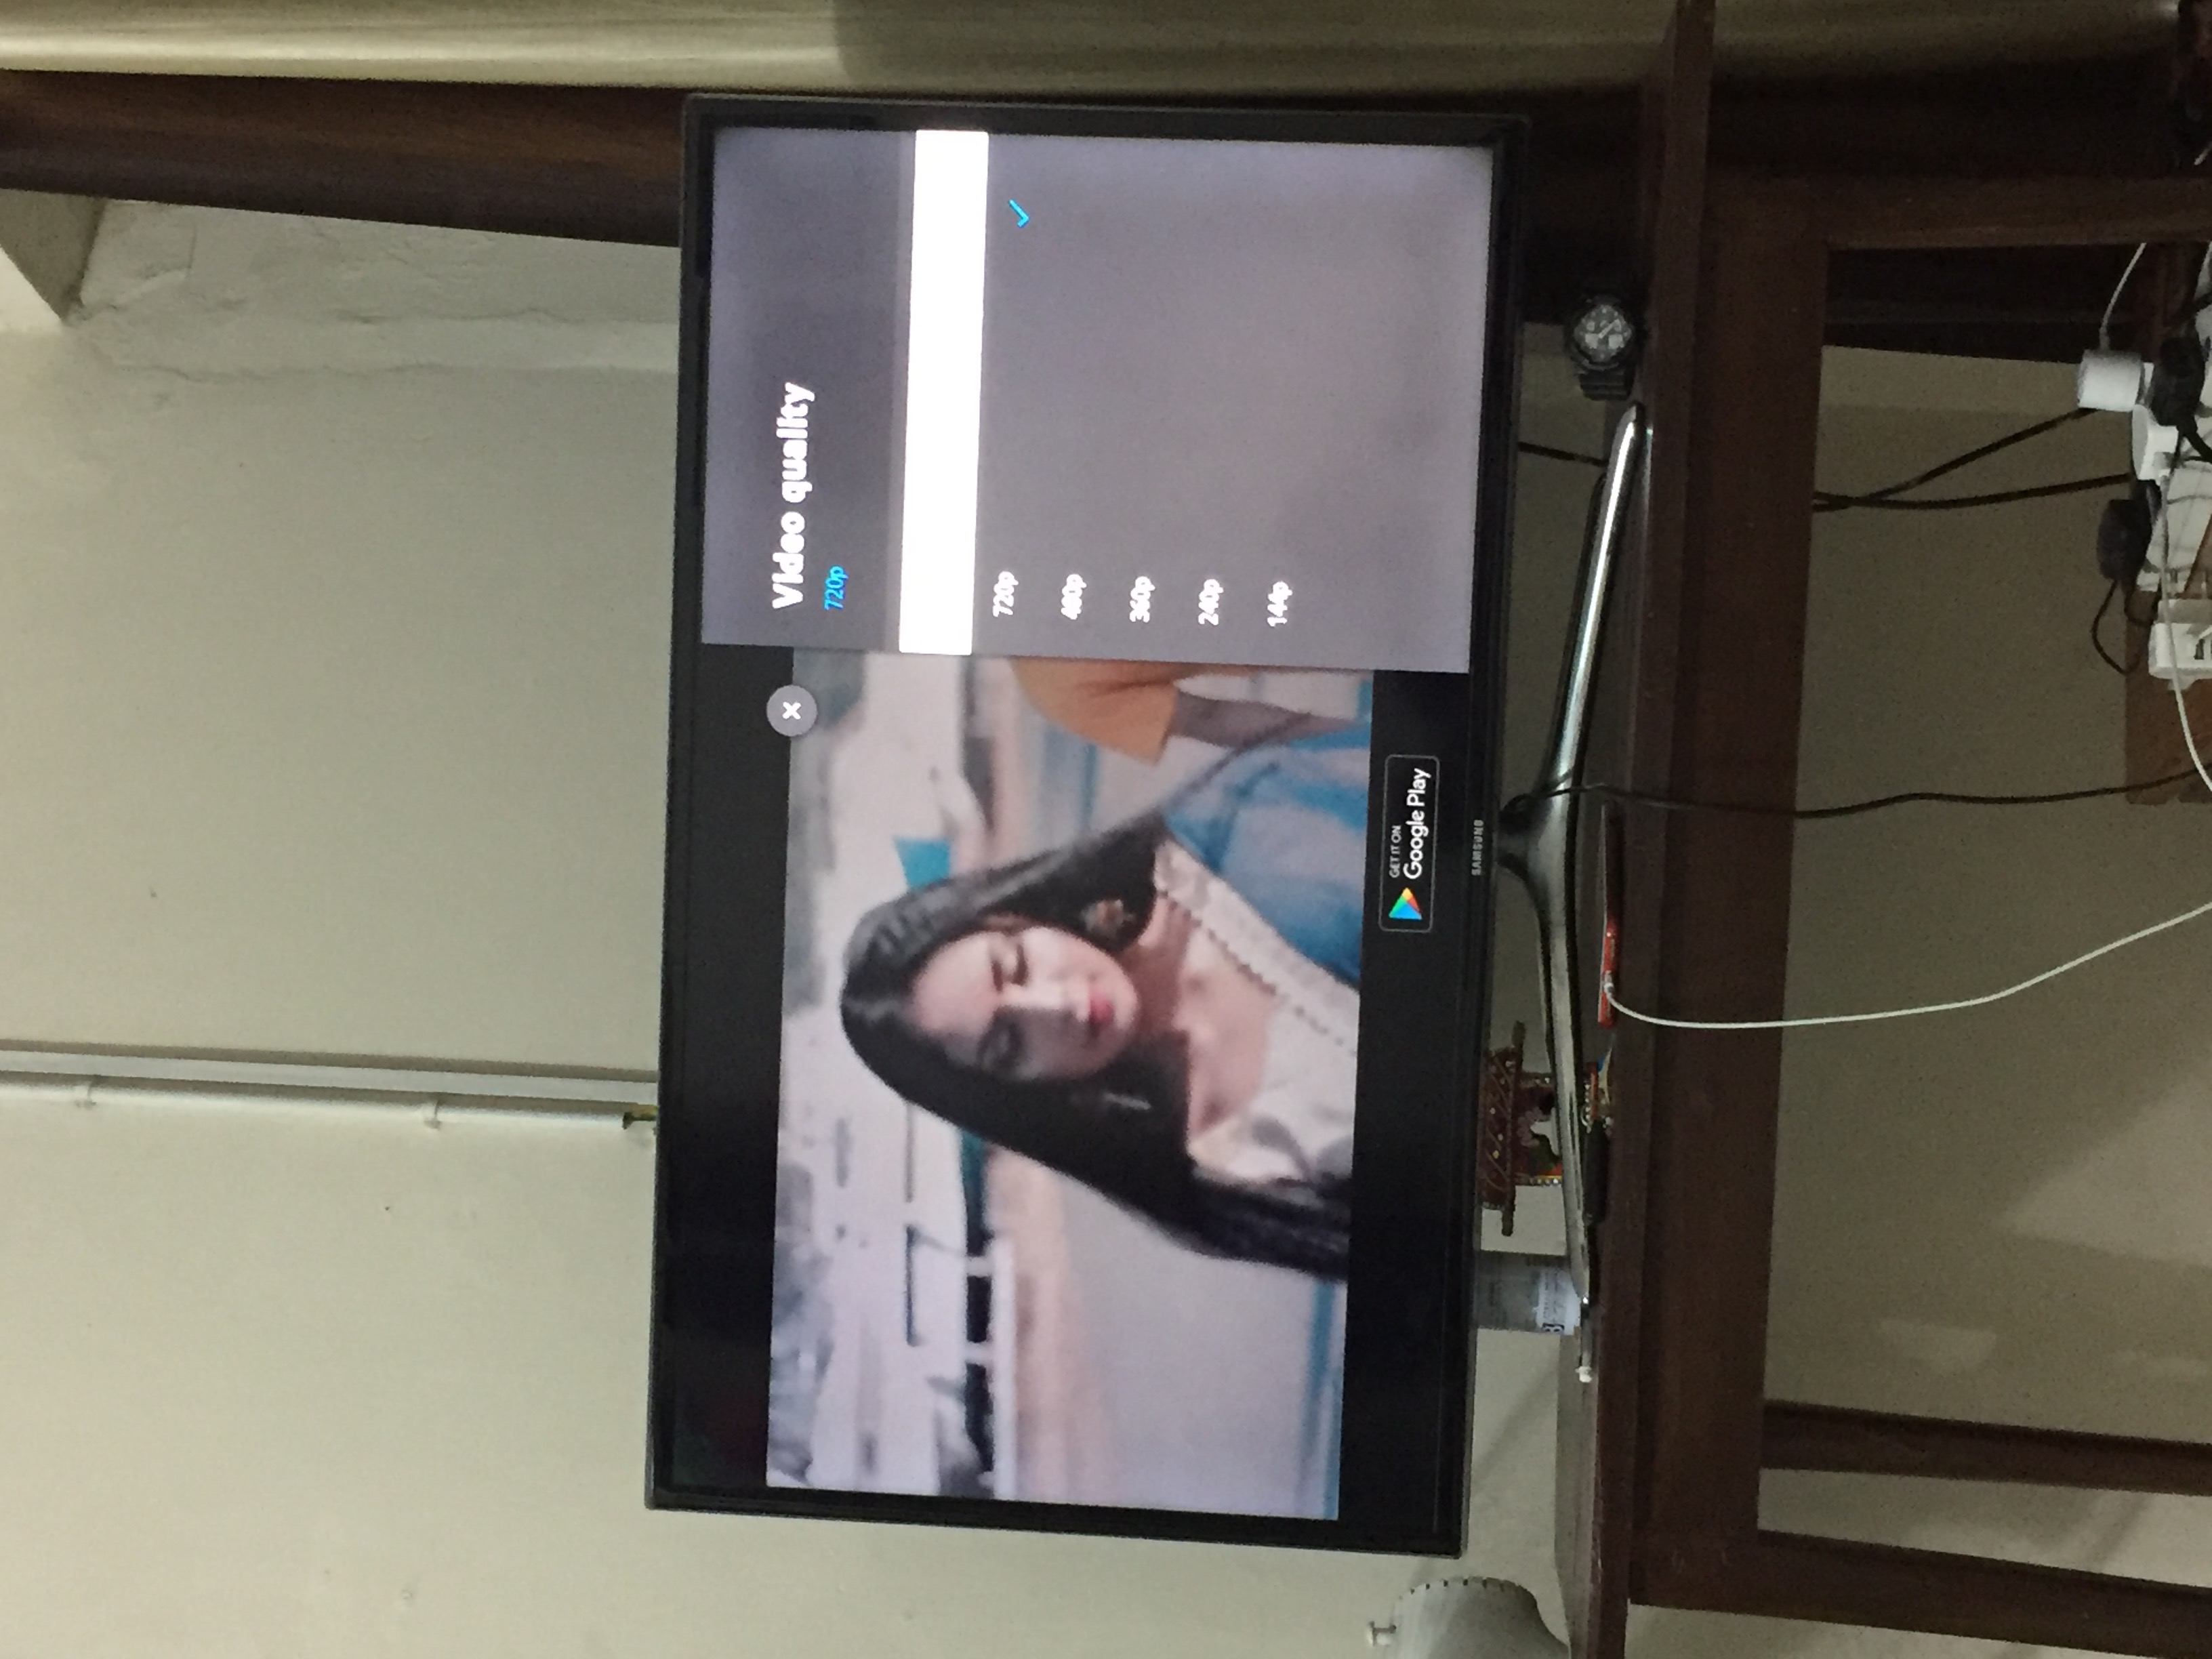 Samsung HD LED UA40F6400 tv YouTube app only plays videos at